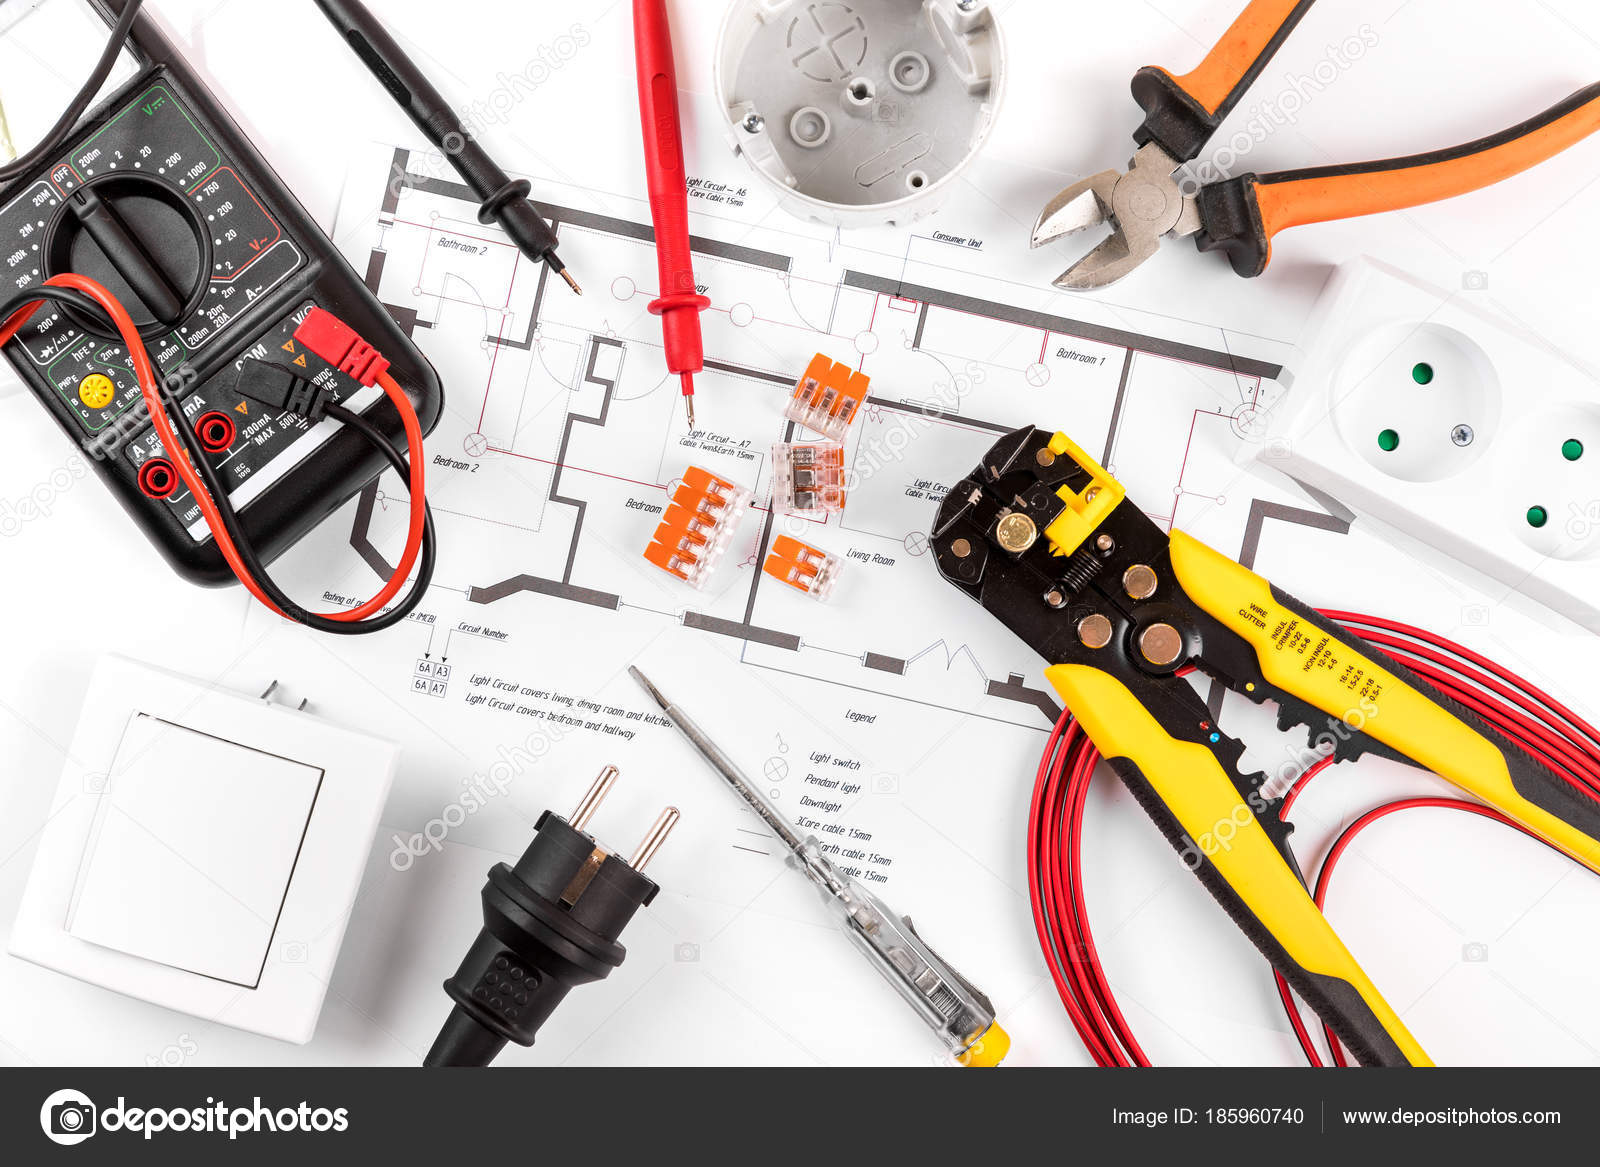 Astounding Electrical Tools And Equipment On Wiring Diagram Top View Stock Wiring 101 Capemaxxcnl